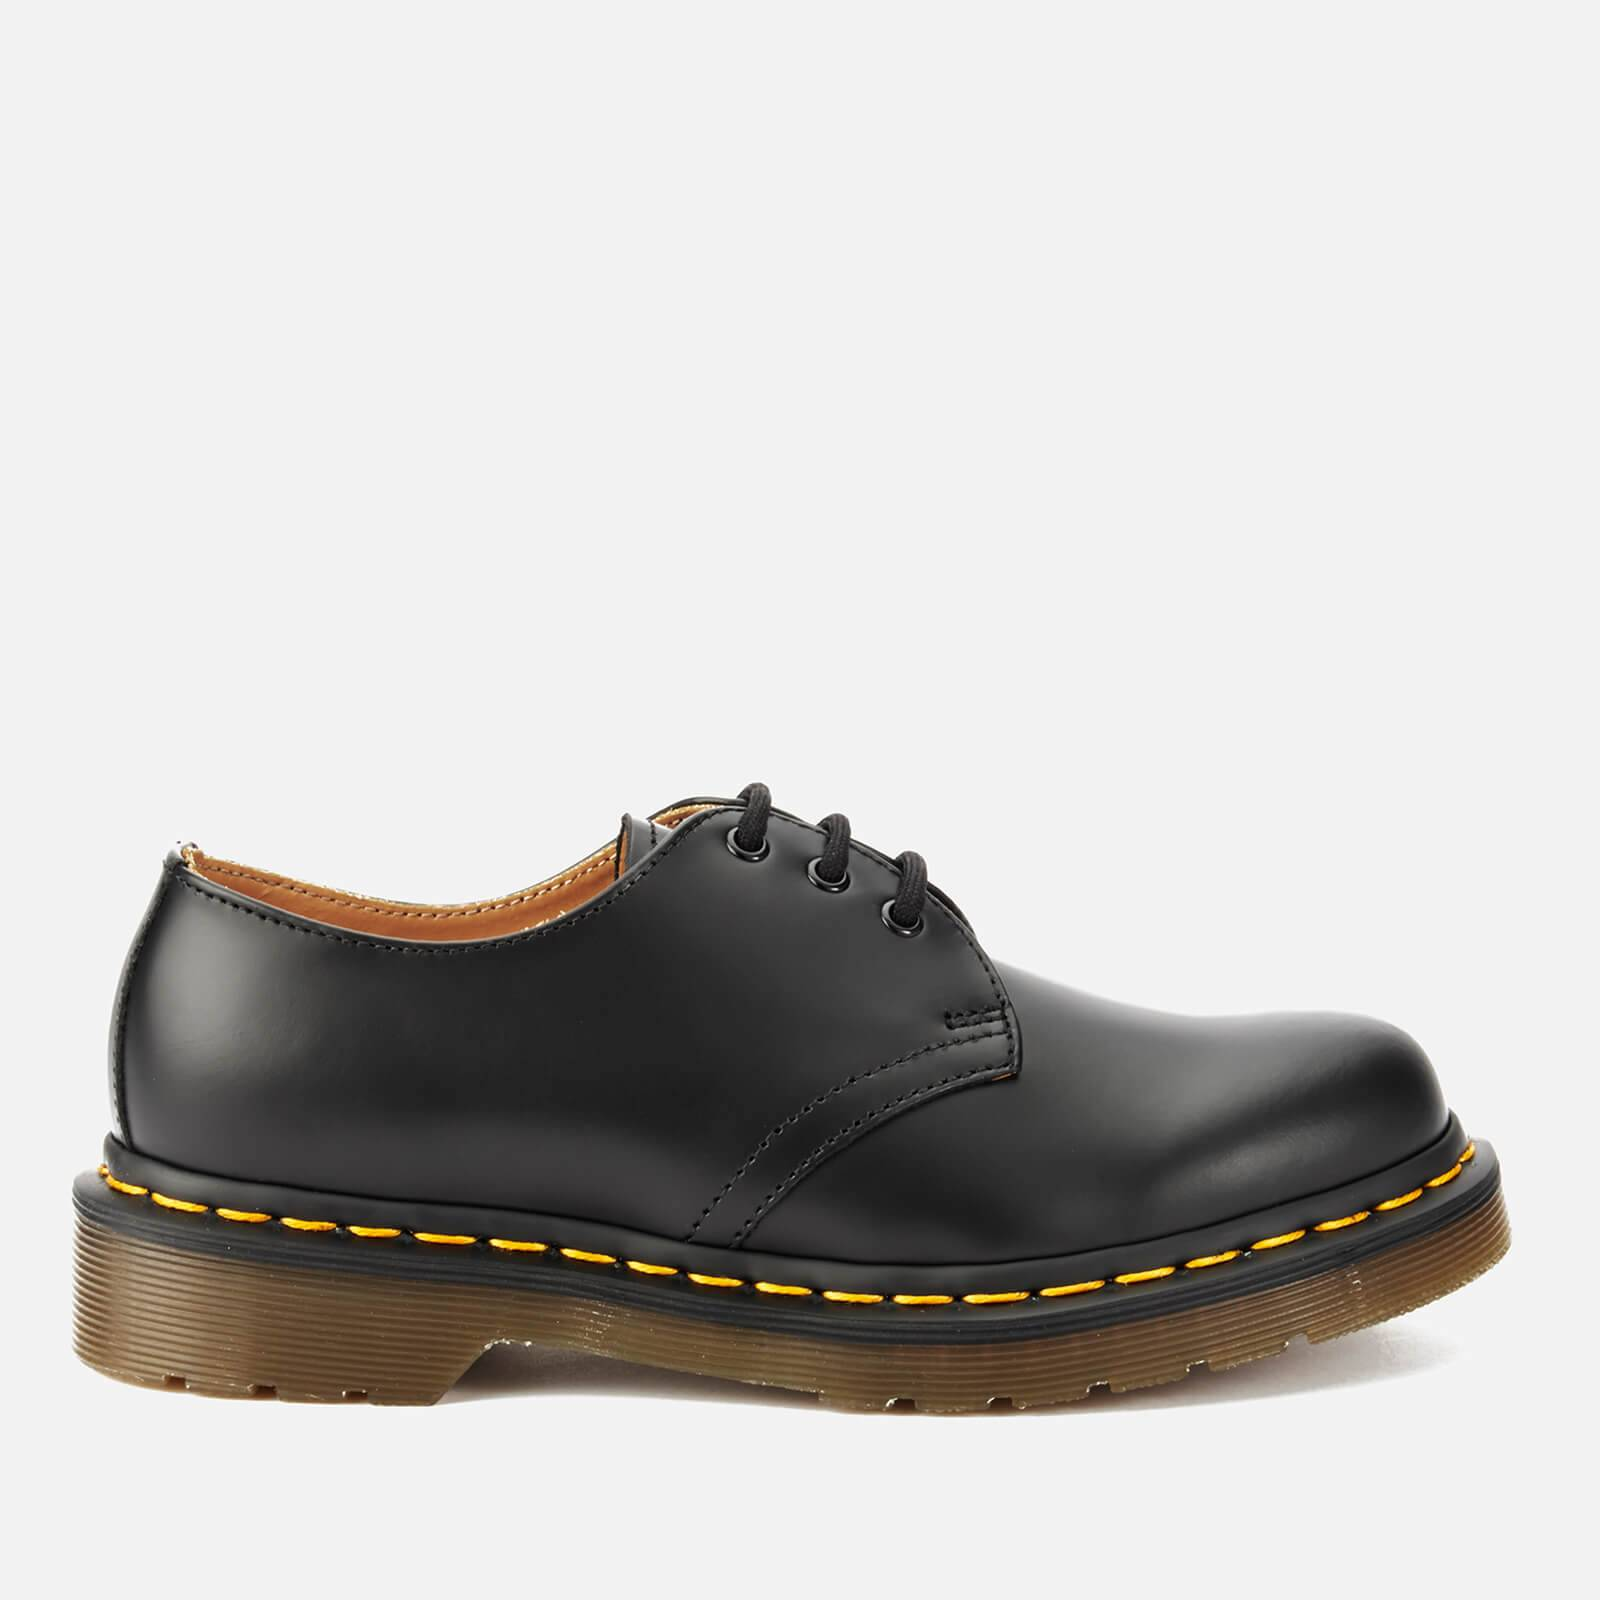 Dr. Martens 1461 Smooth Leather 3-Eye Shoes - Black - UK 6